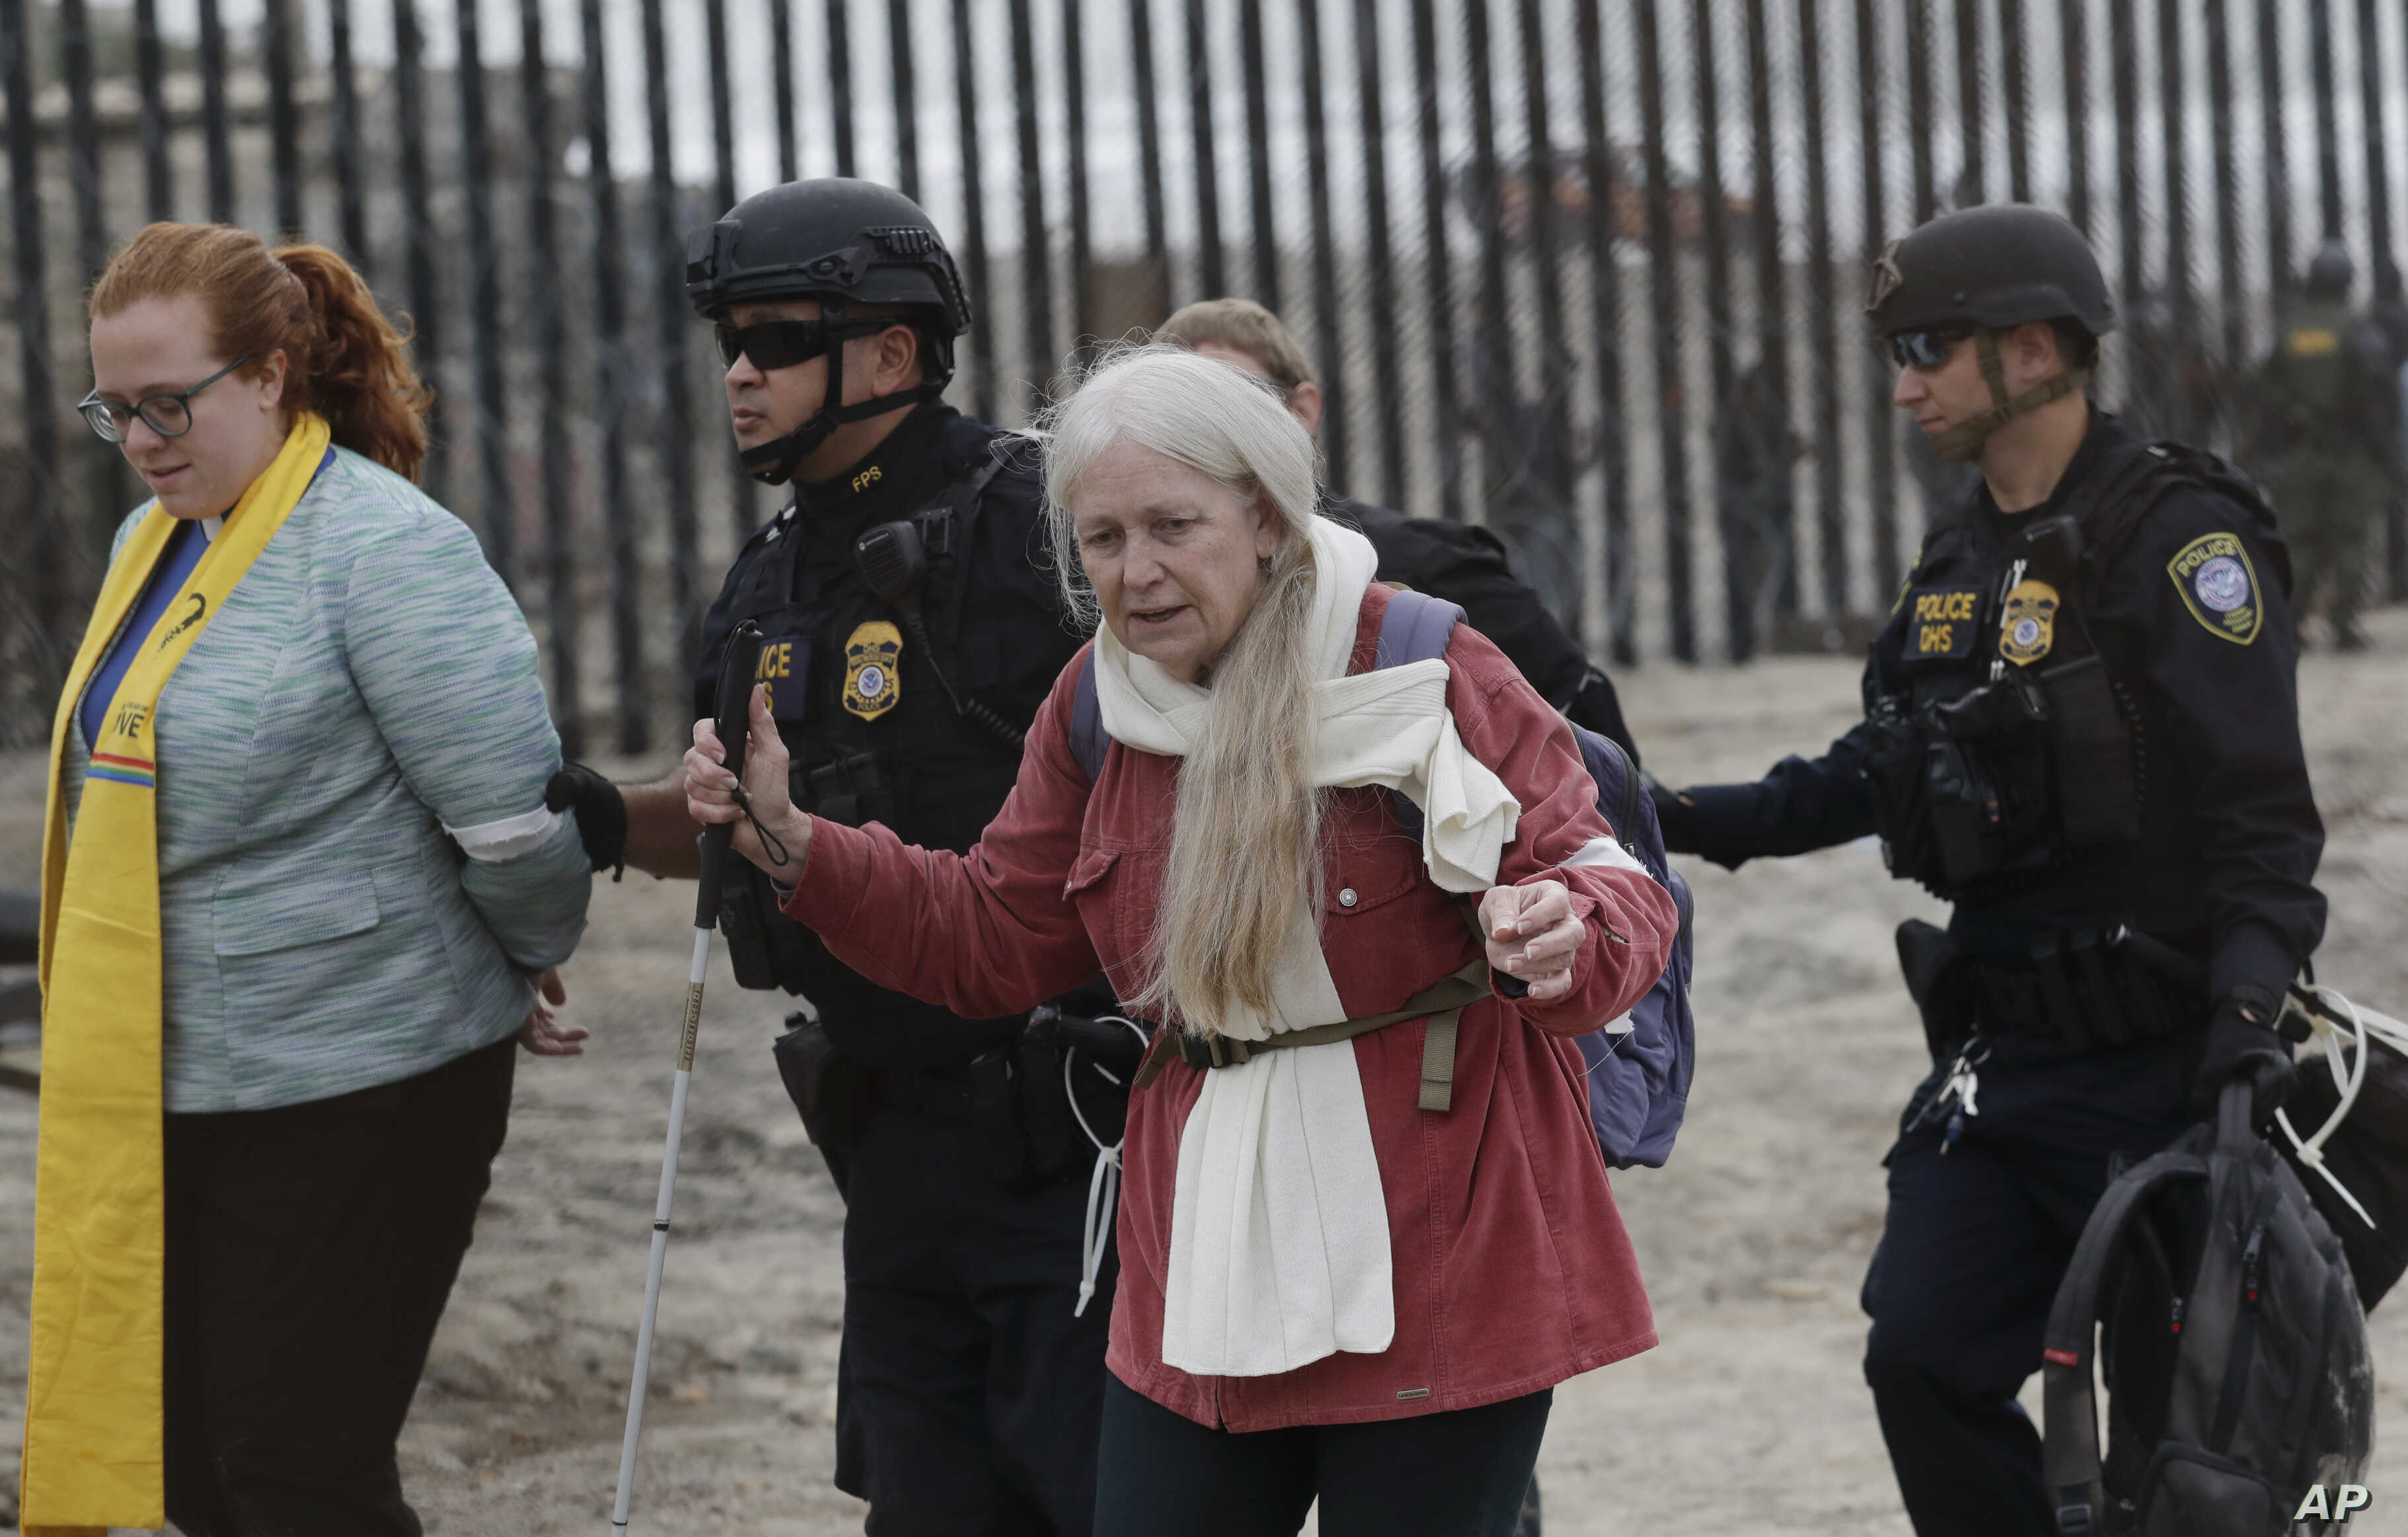 Women are detained during a protest in San Diego, near the border with Tijuana, Mexico, Dec. 10, 2018.